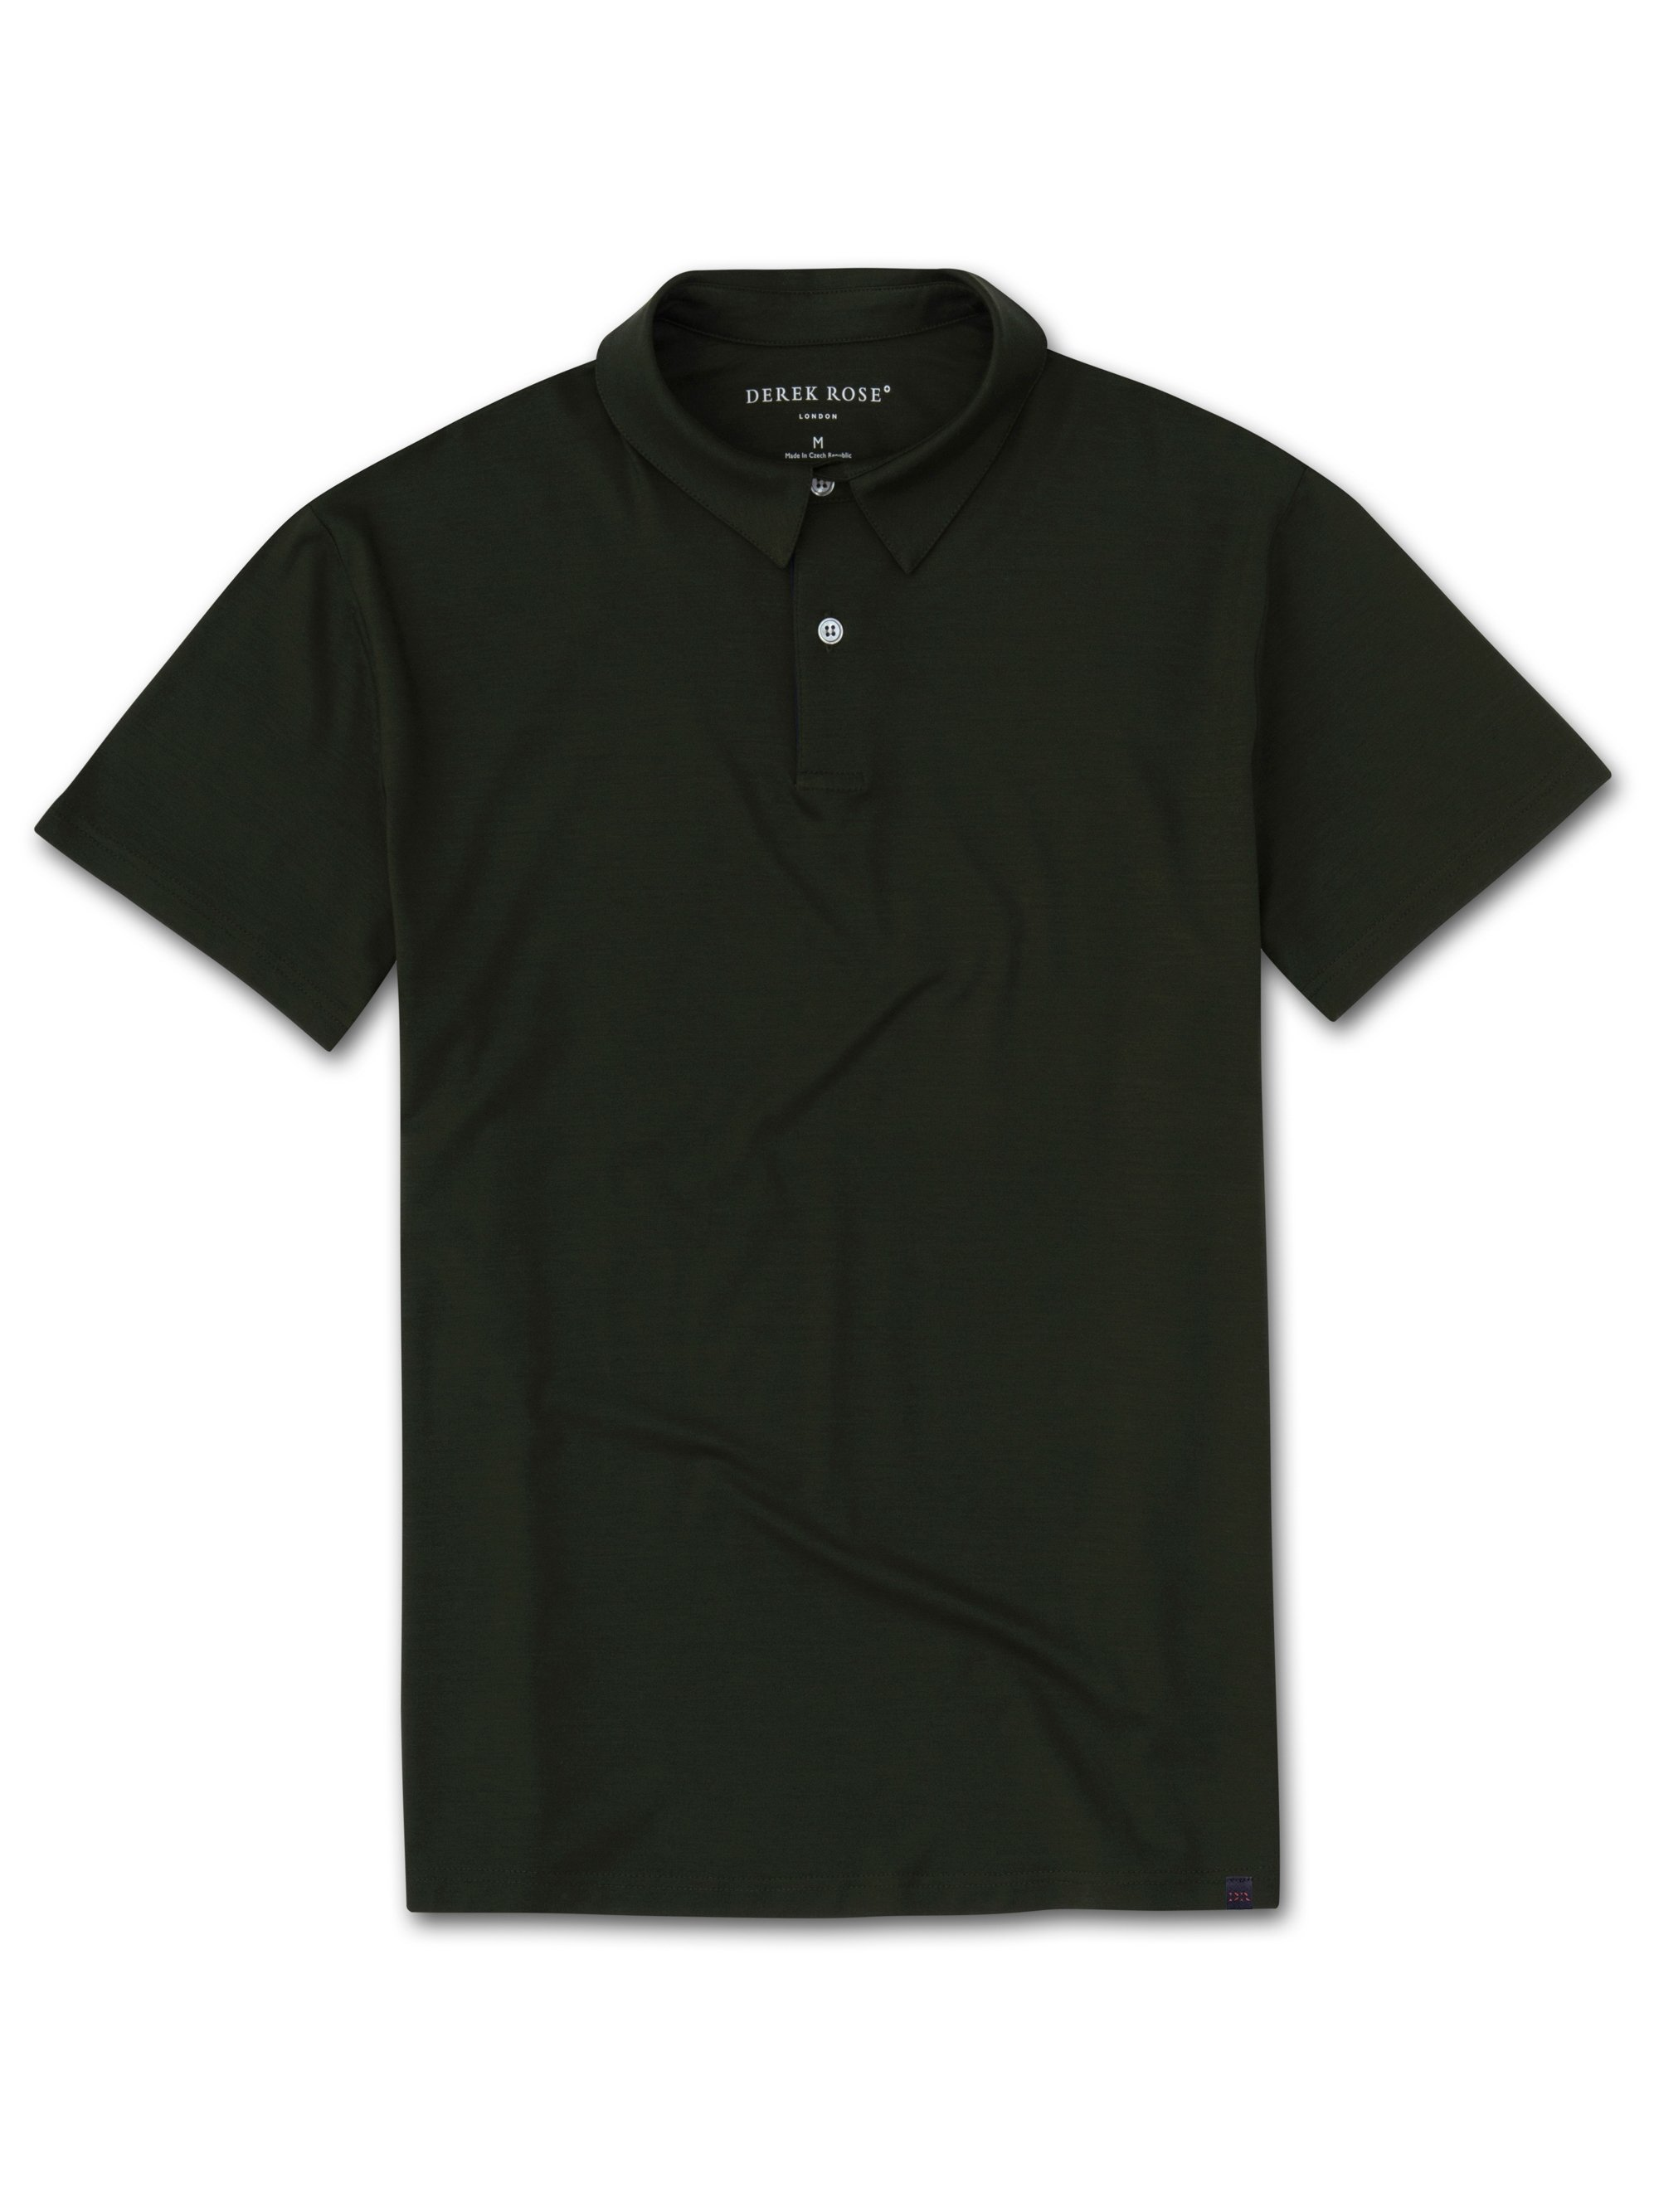 Men's Short Sleeve Polo Shirt Basel 9 Micro Modal Stretch Green